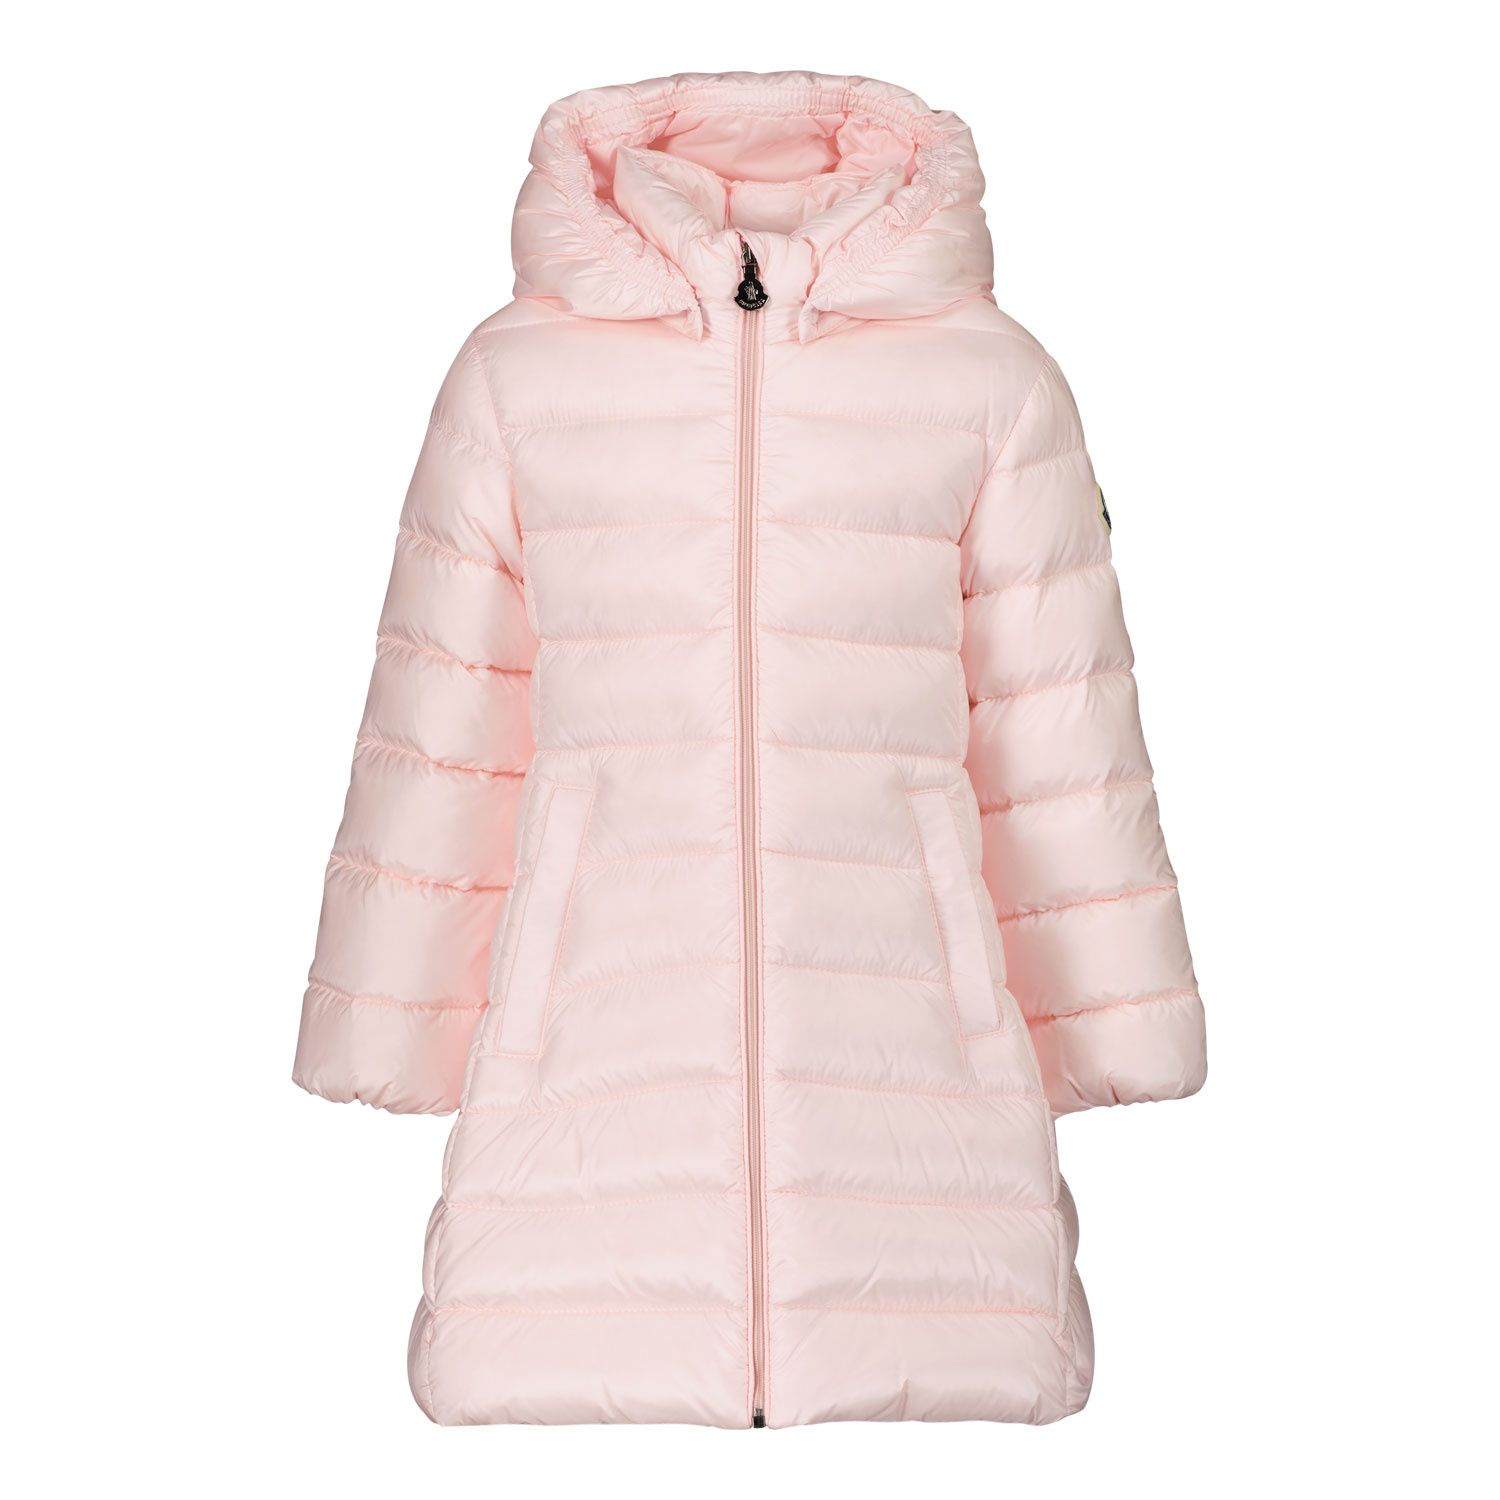 Picture of Moncler 1C50510 baby coat light pink